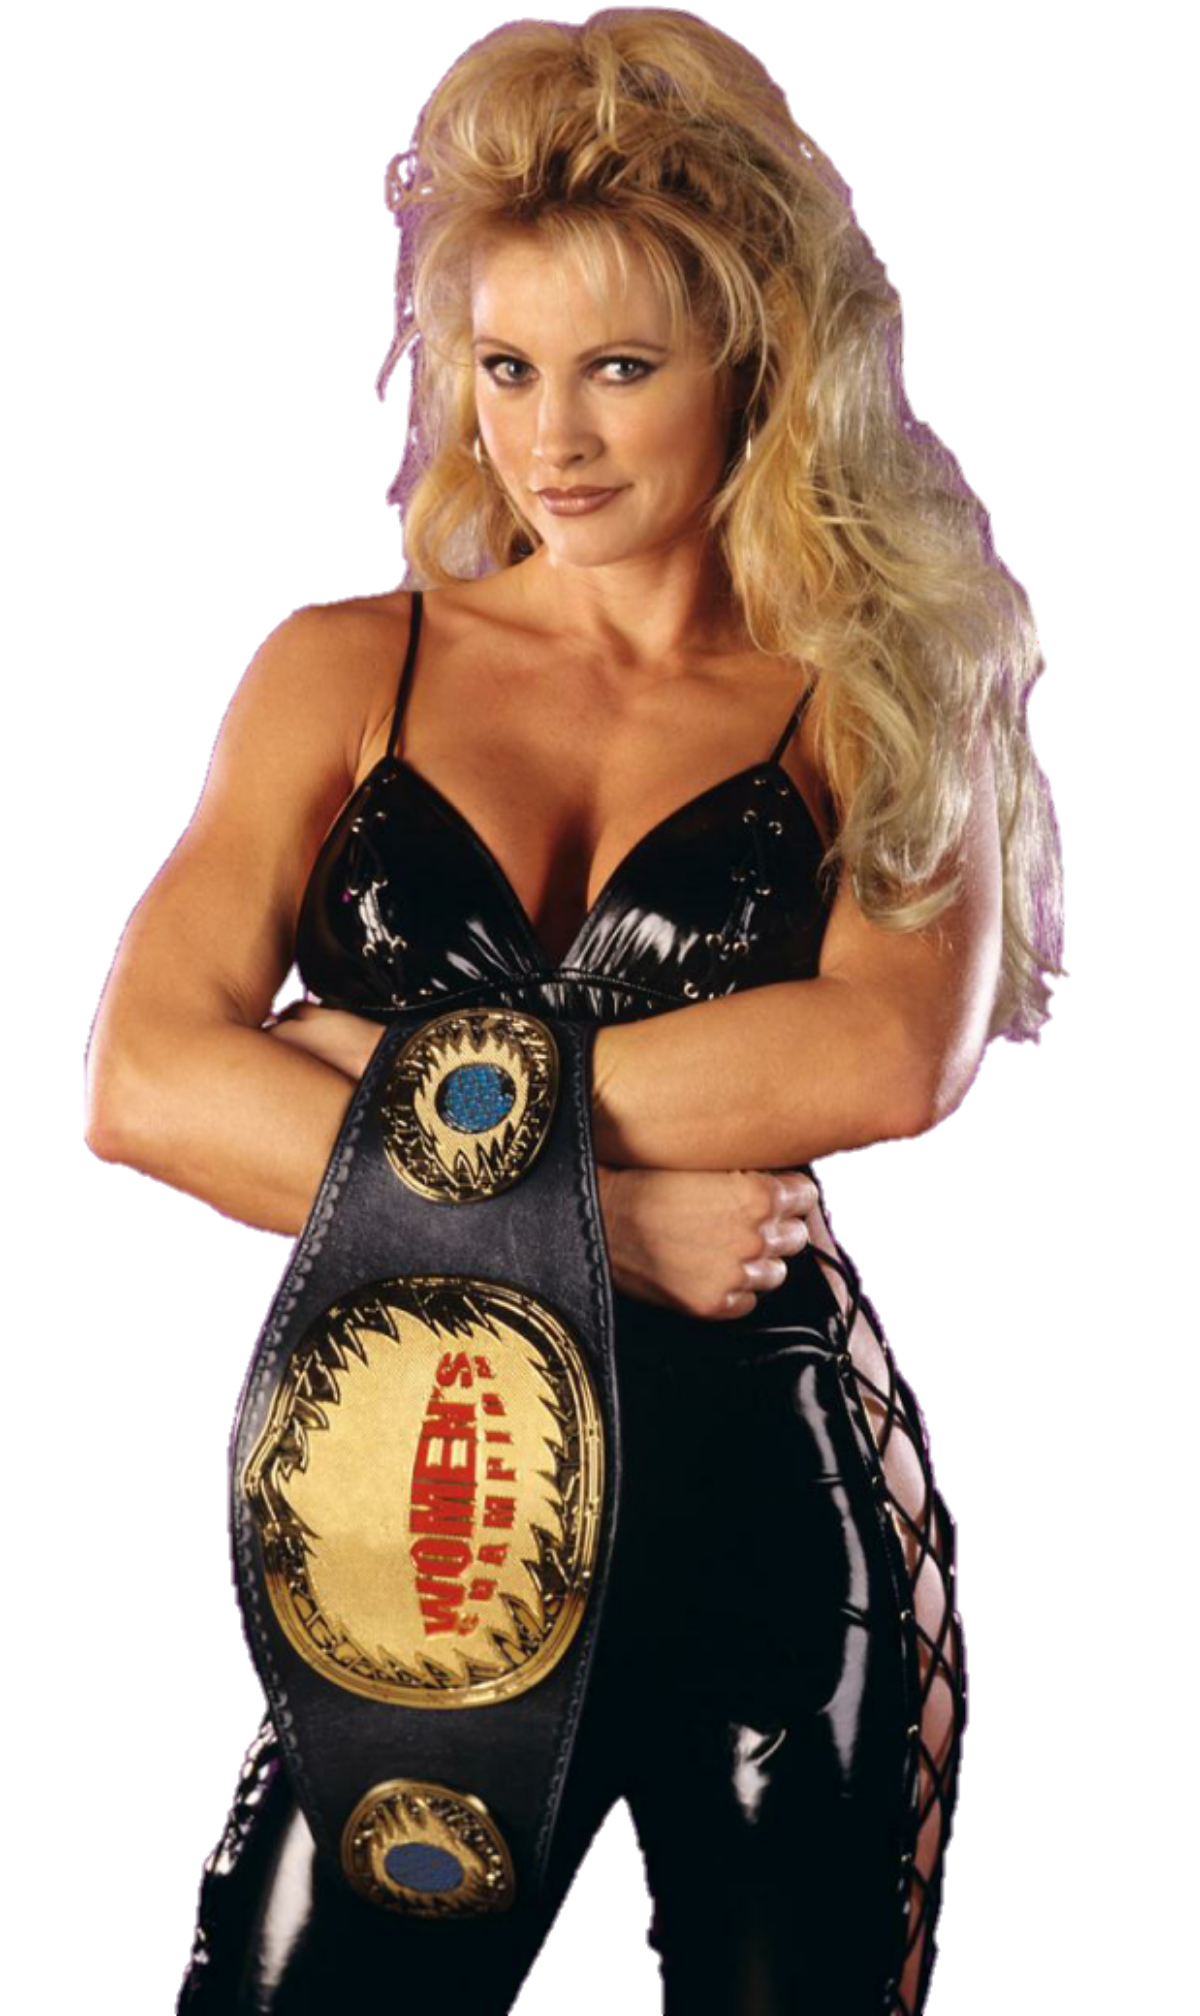 Sable - WWE Image - ID: 152836 - Image Abyss